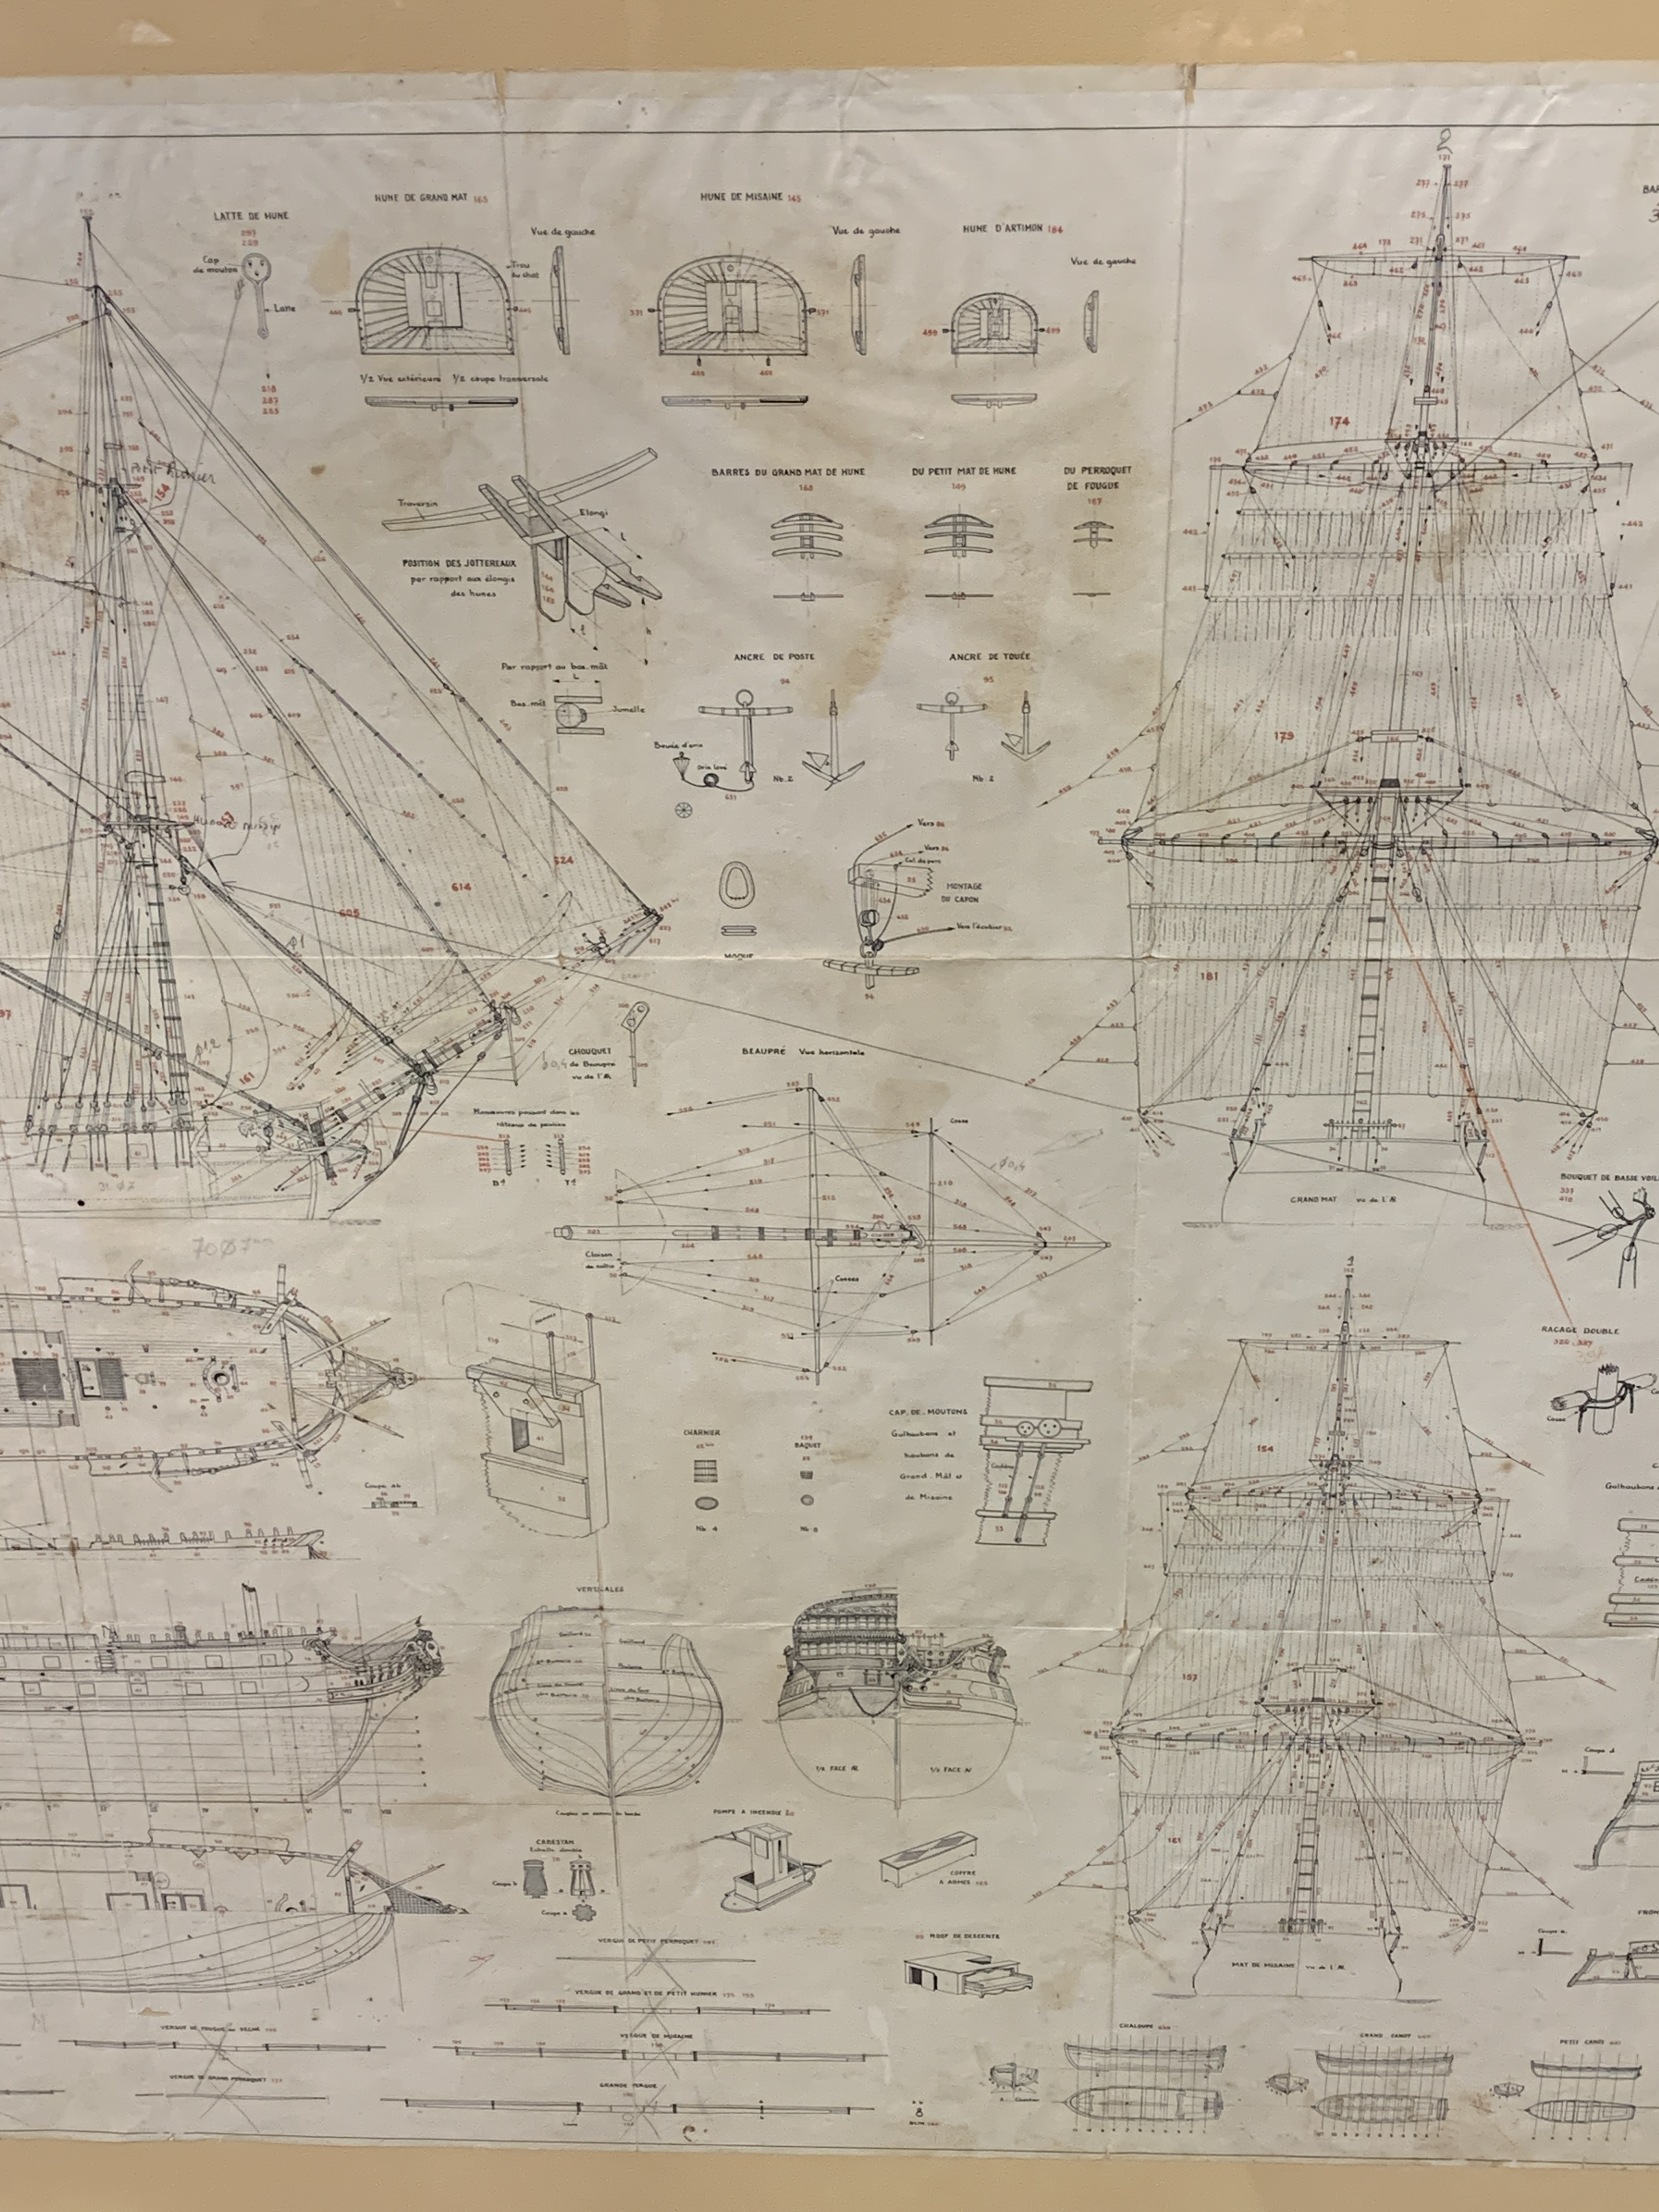 A Musee de La Marie, 1/150 scale plan of the 74 gun warship Le Superbe - Image 3 of 5